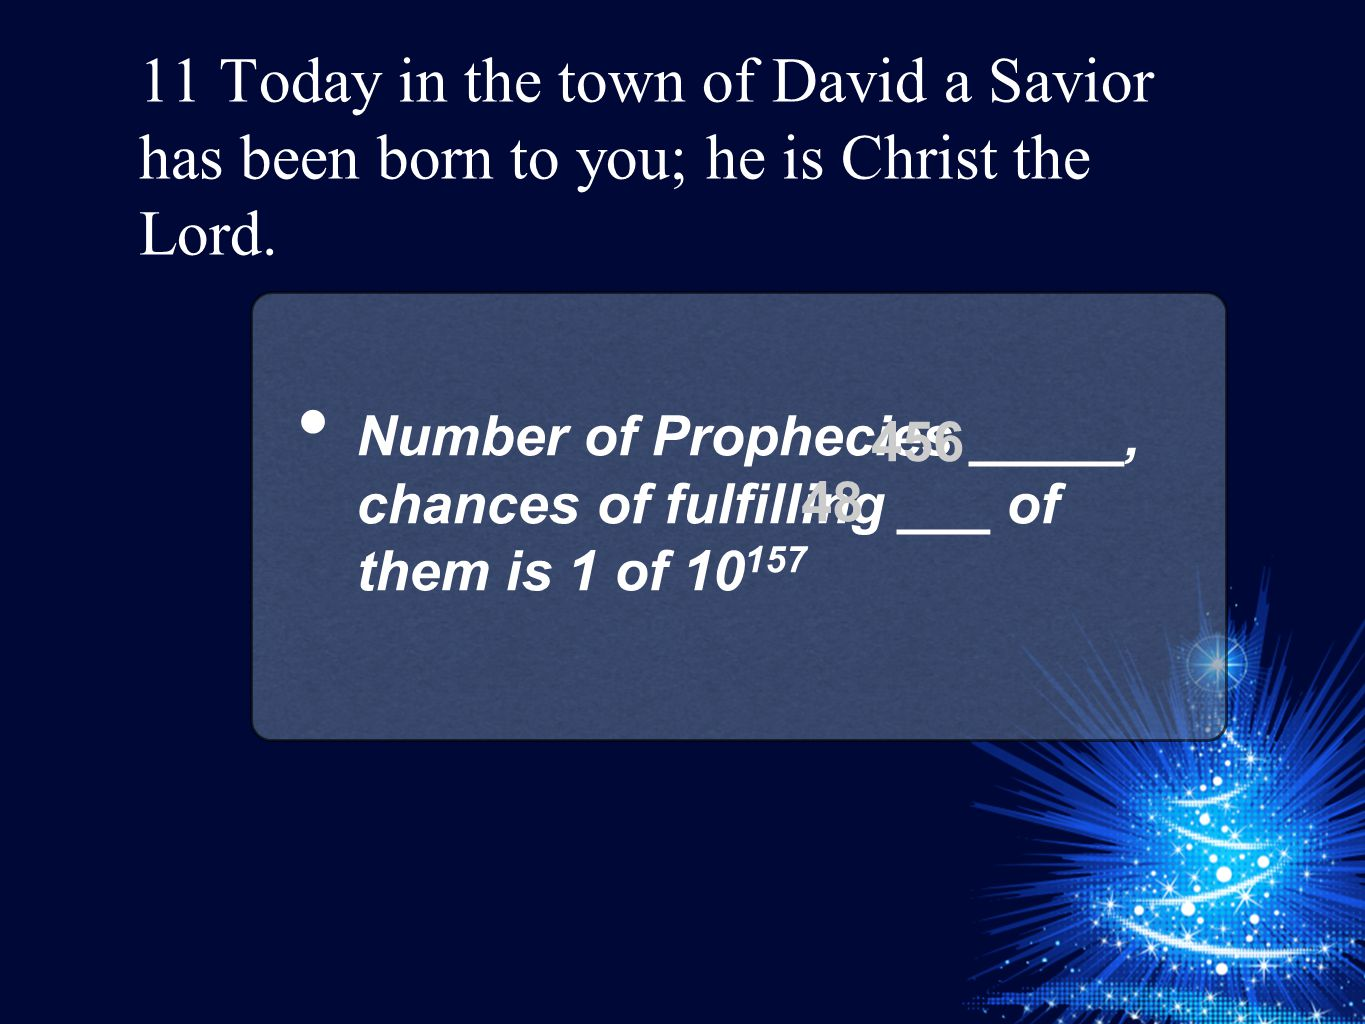 11 Today in the town of David a Savior has been born to you; he is Christ the Lord.